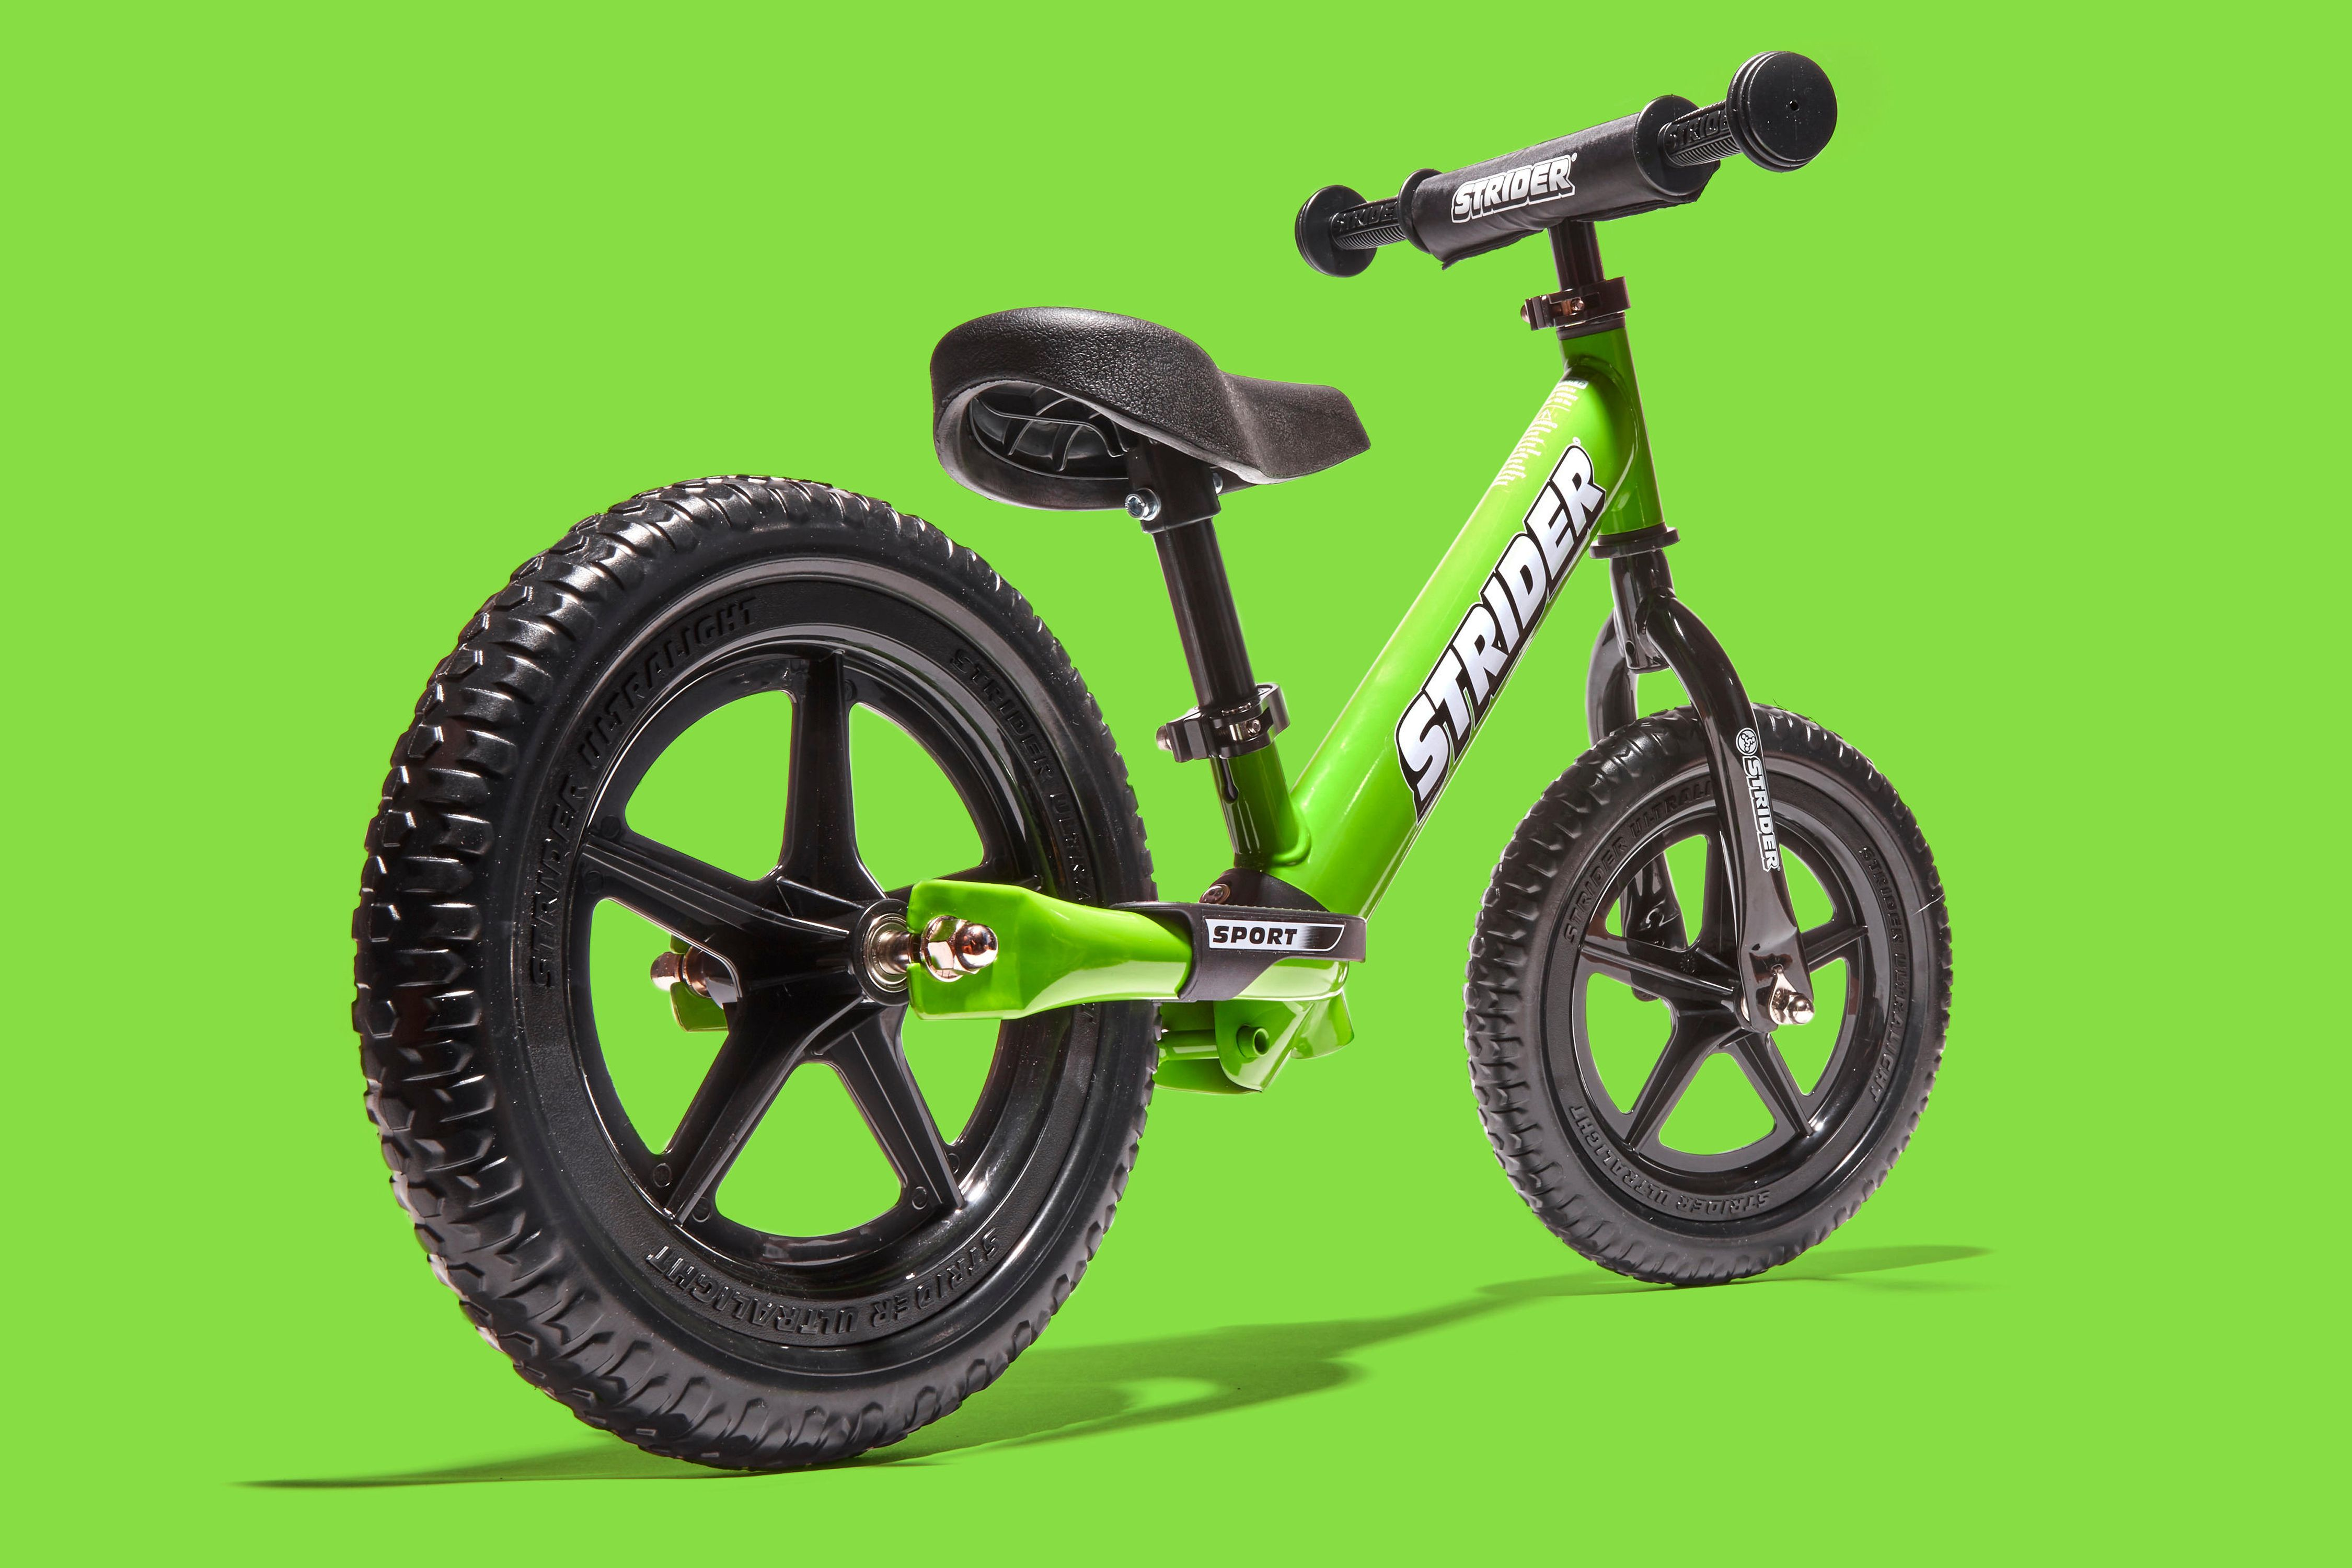 The Strider 12 Sport Revolutionized How Kids Learn to Ride